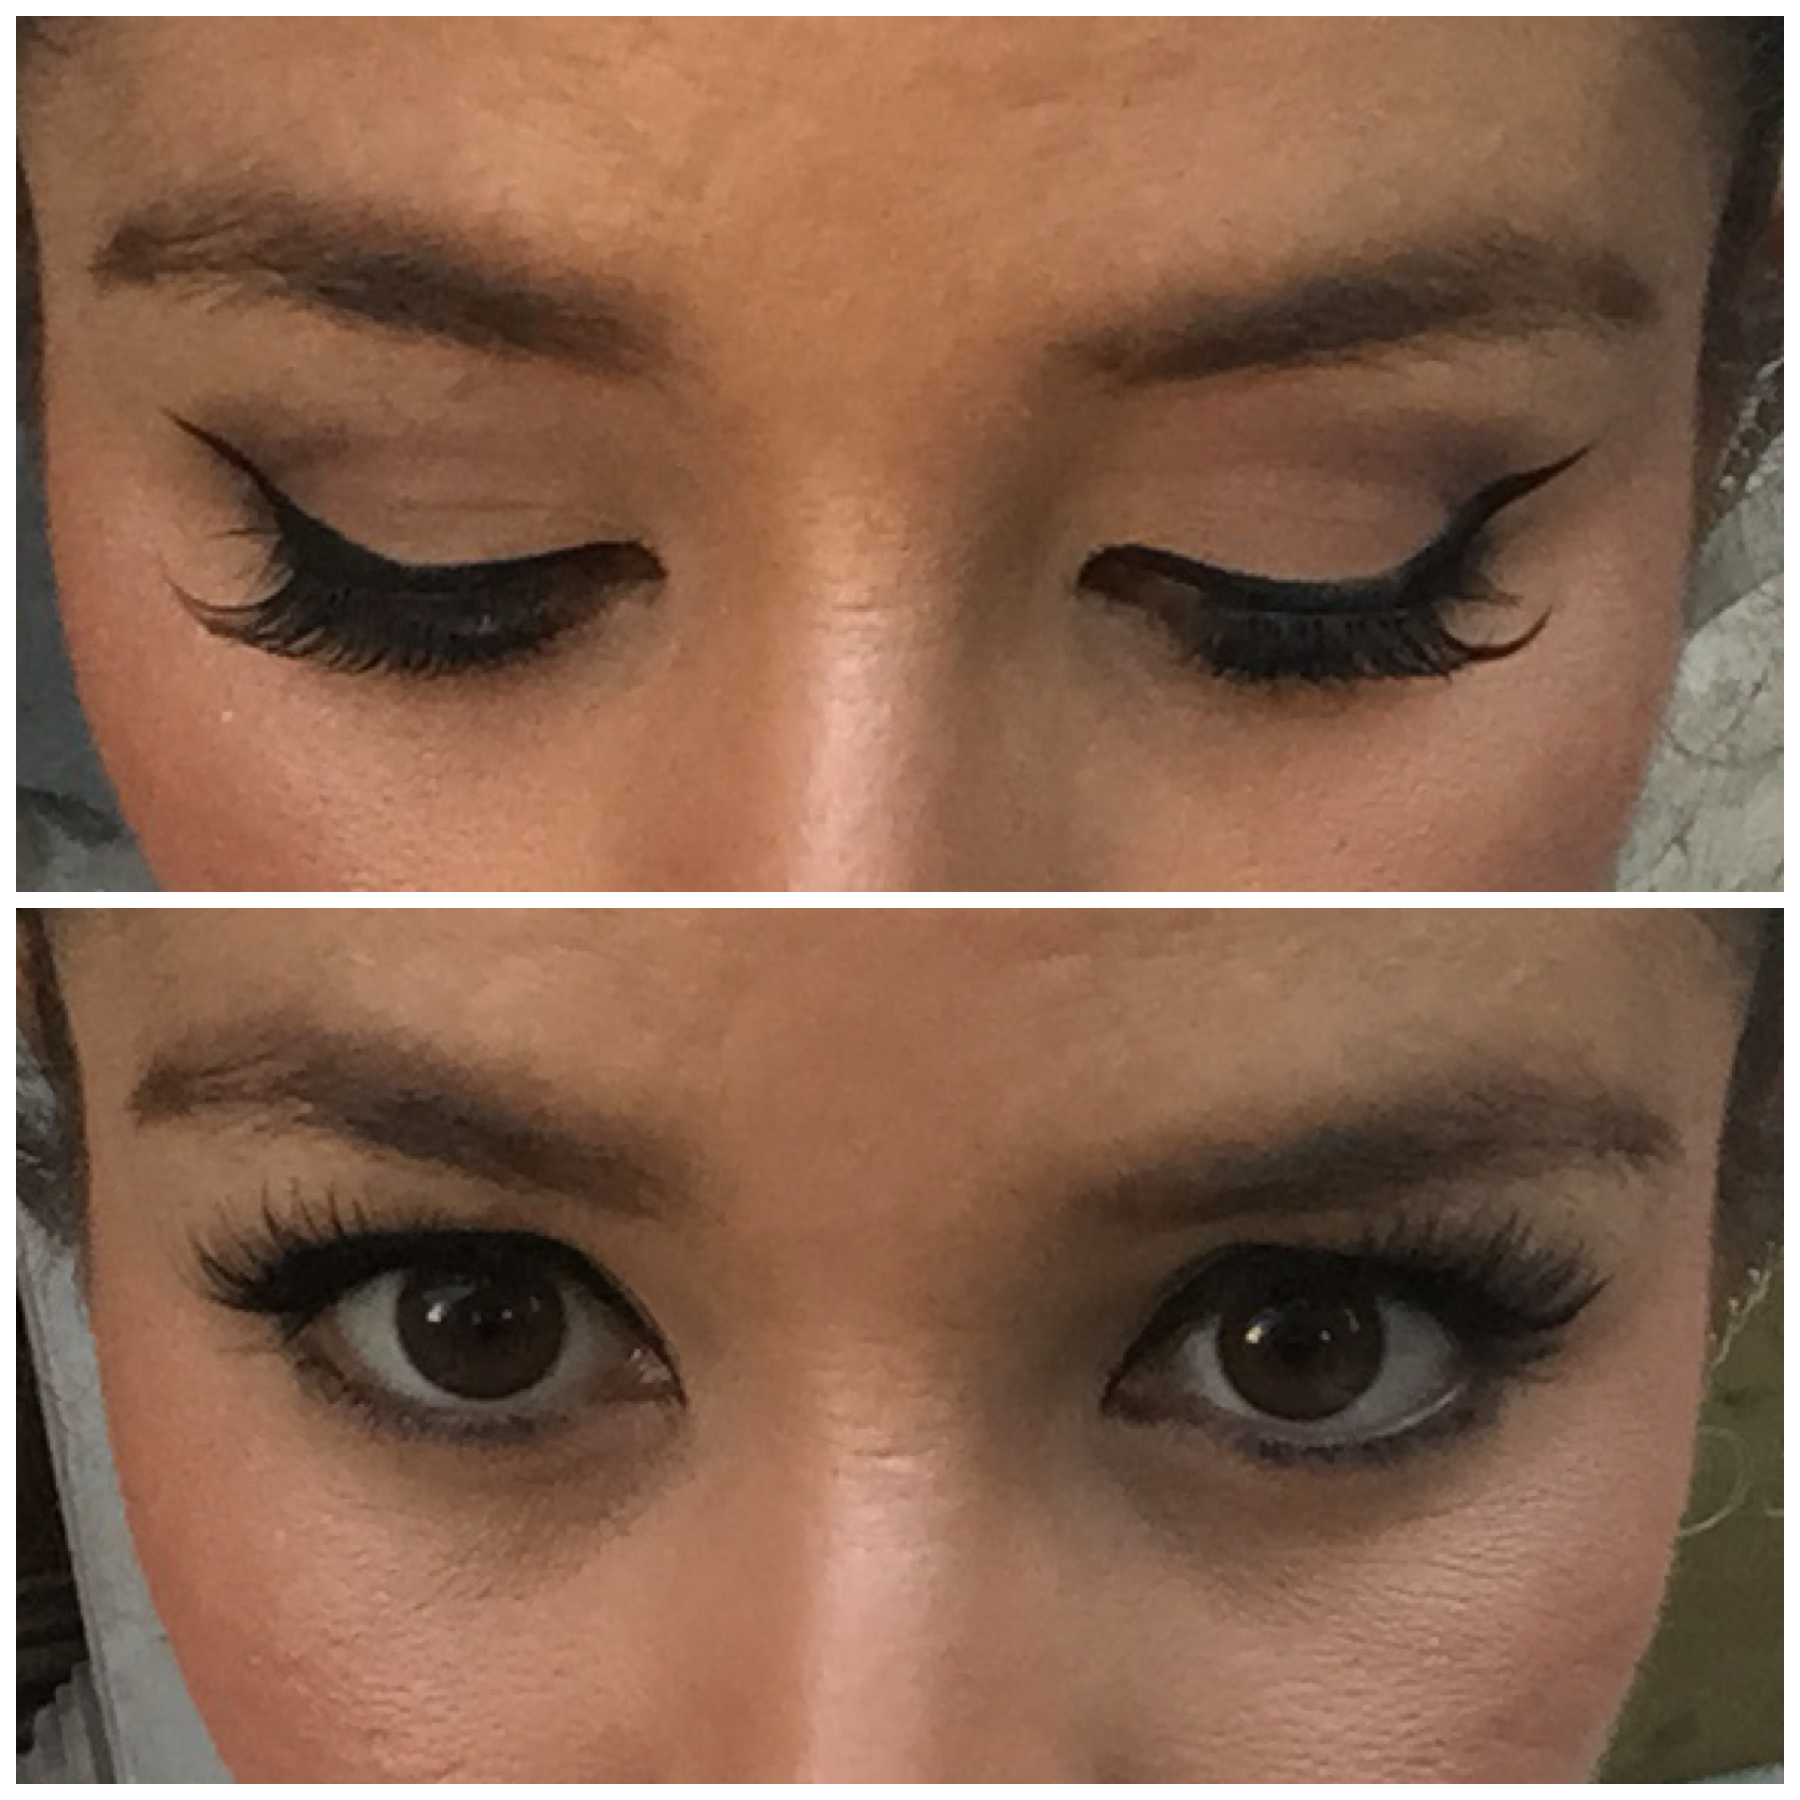 fb552a7a9d9 Now, I'm not sure I mentioned before, but the glue that comes with the Eylure  lashes is amazing – easy application mini wand and all night hold.